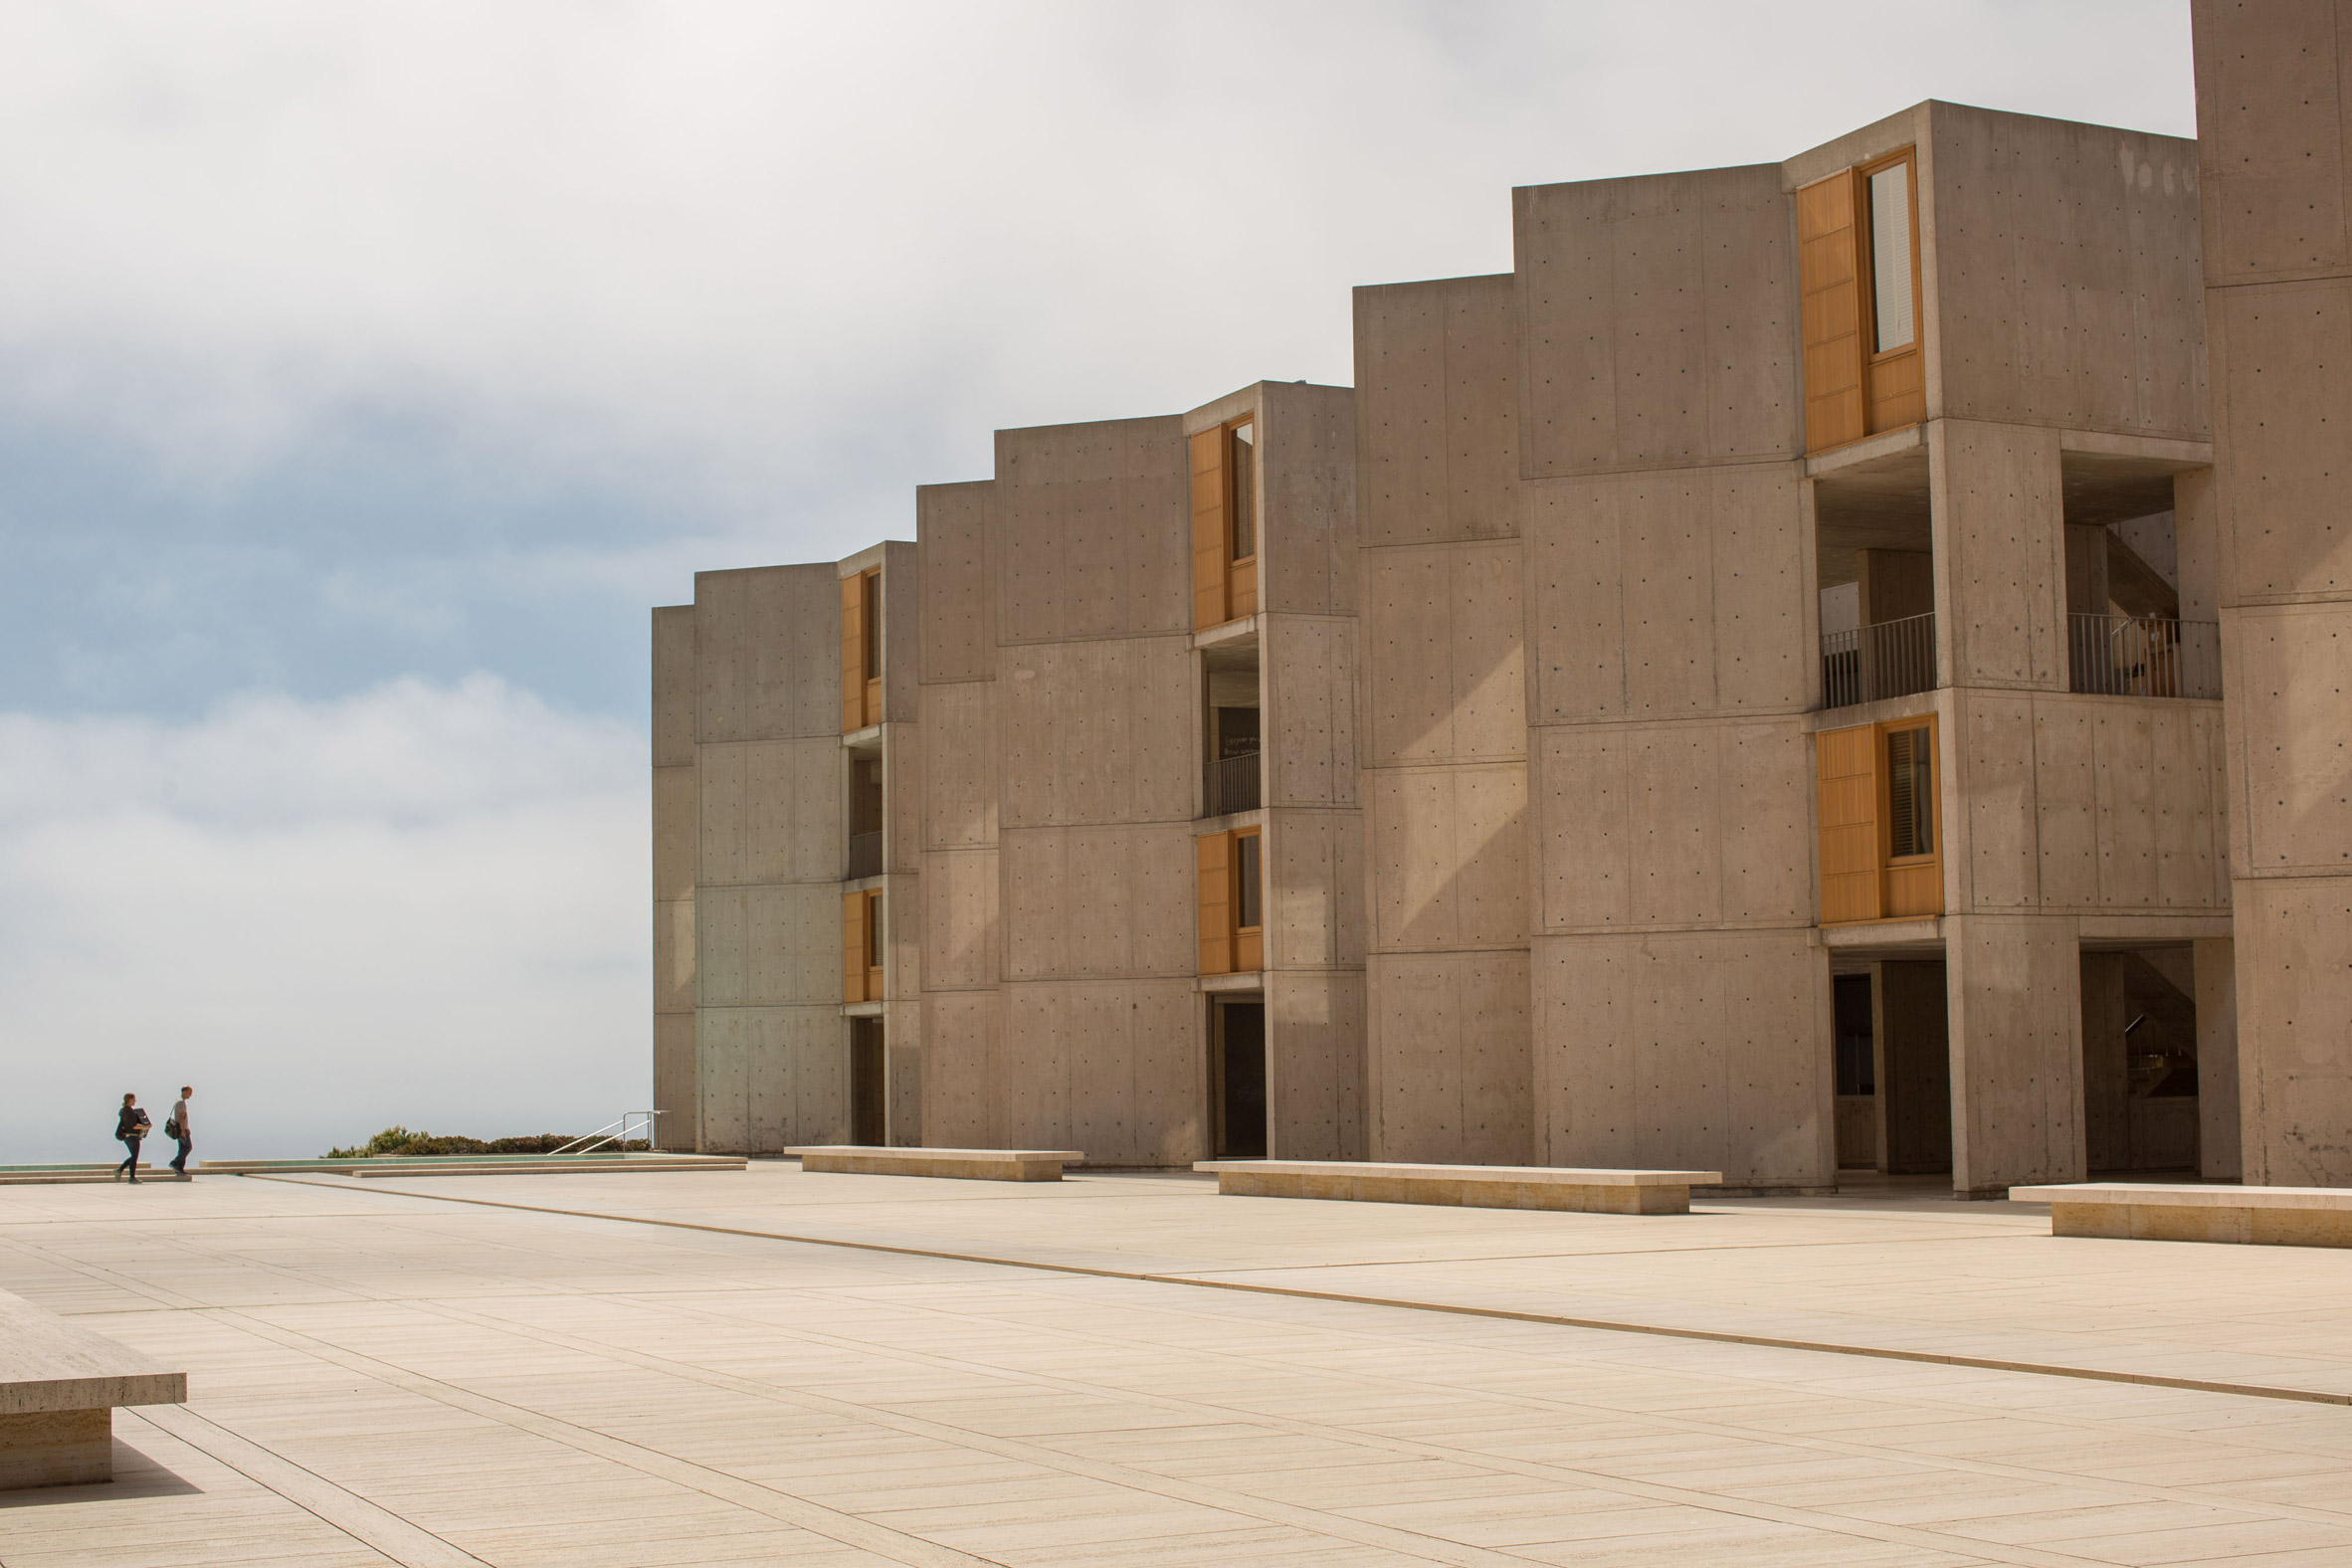 Restoration work completes on Louis Khan's Salk Institute in California